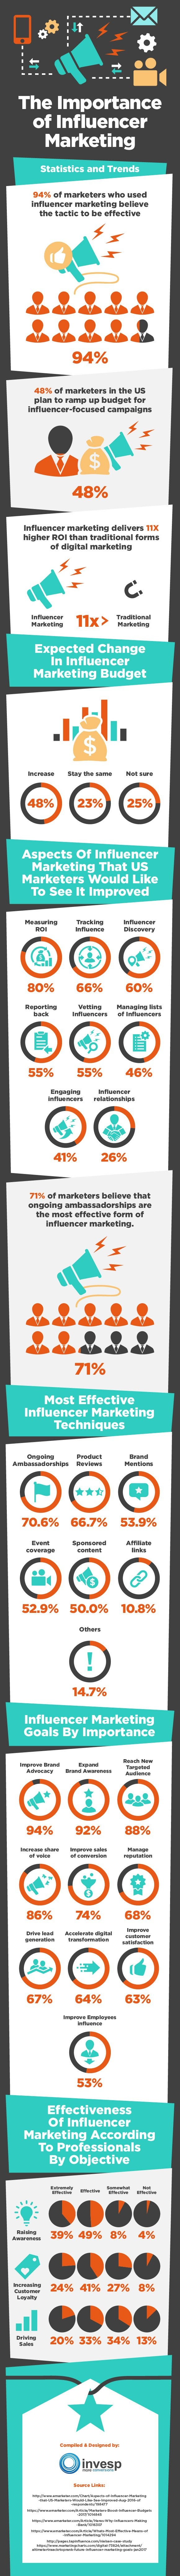 The Rising Importance of Influencer Marketing – Statistics and Trends [Infographic]